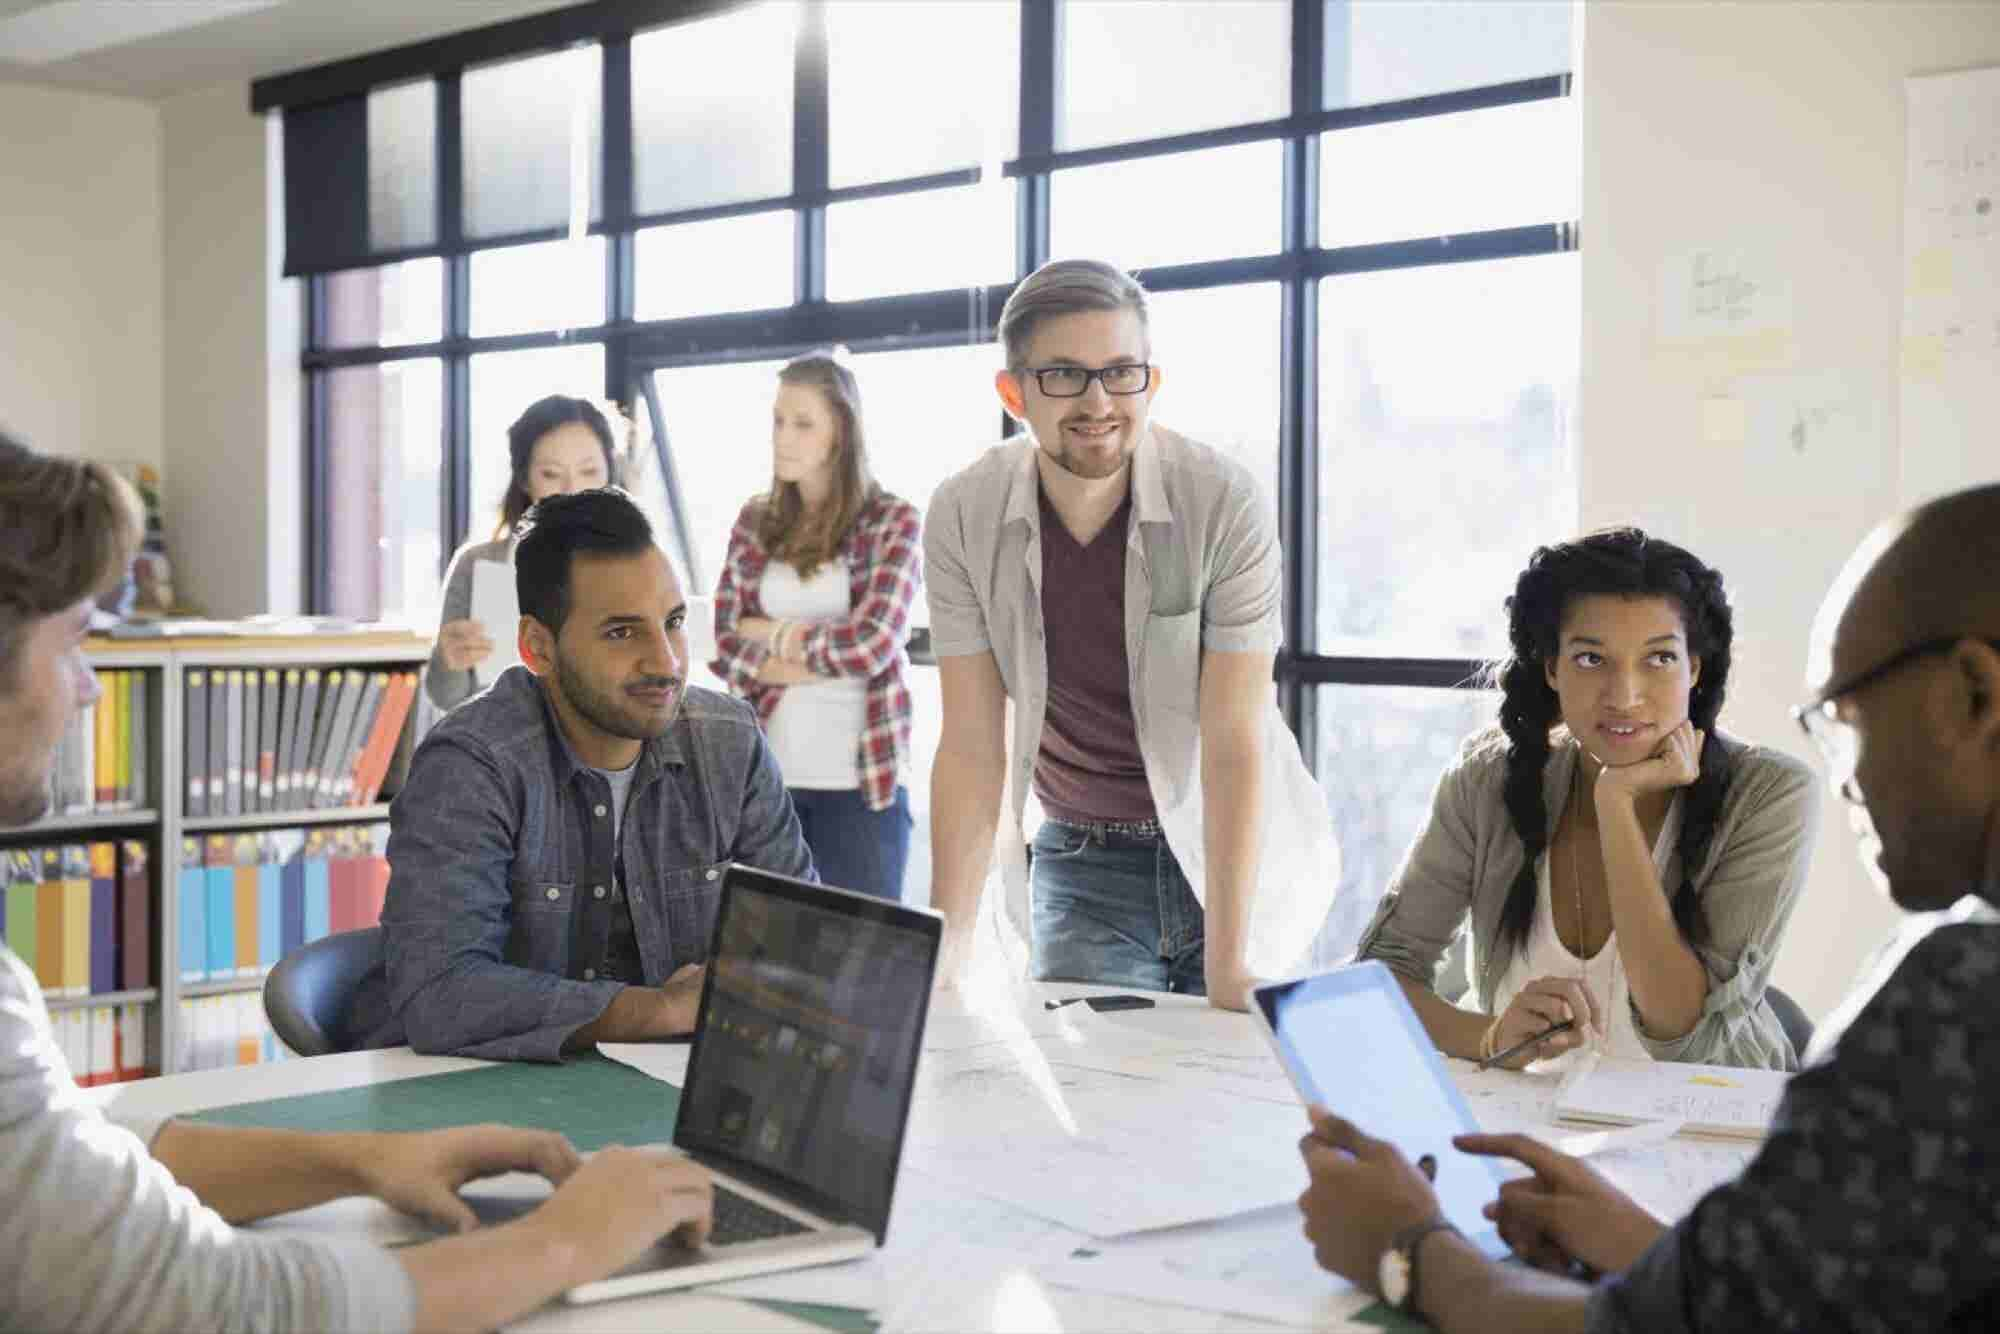 10 Ways to Make Your Employees 10x More Productive